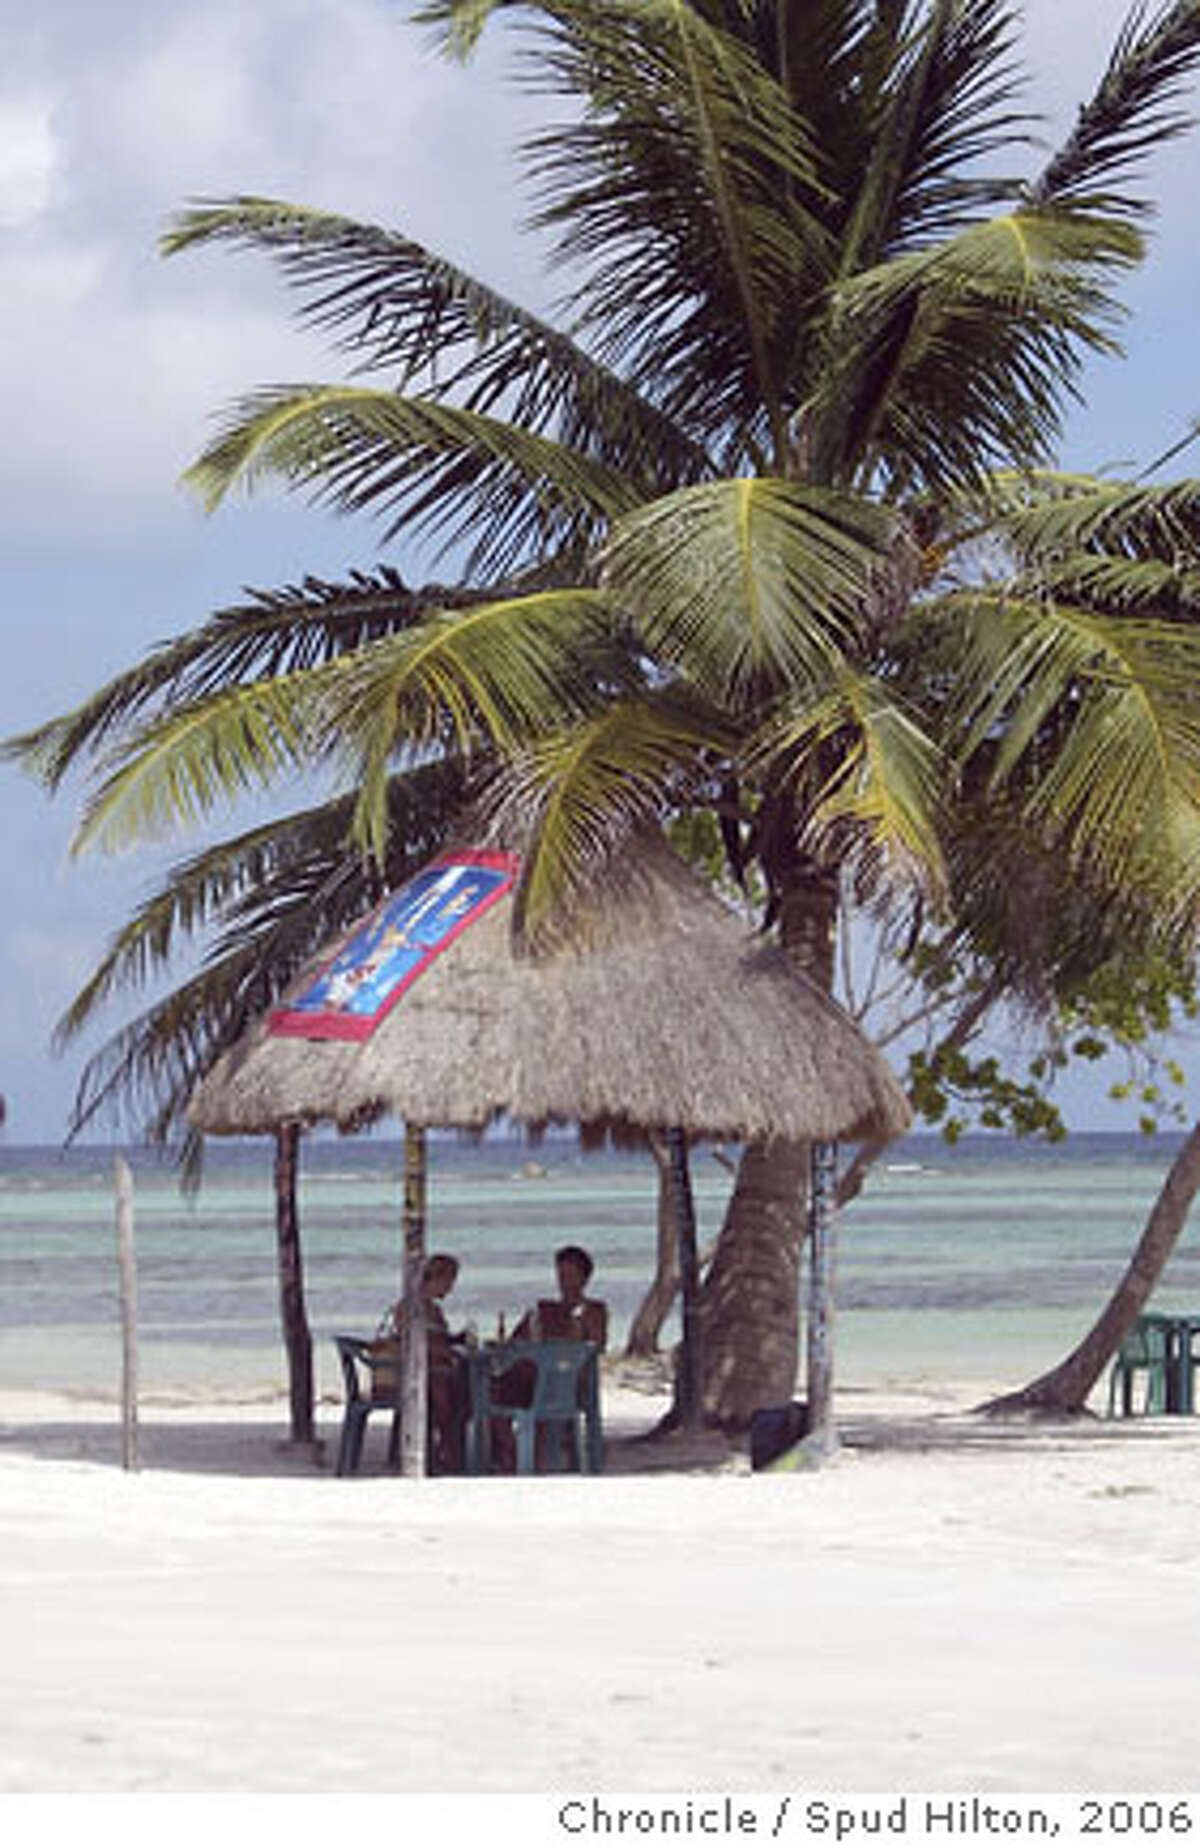 TRAVEL COSTA MAYA -- Scenes from the village of Mahahual, a tiny fishing village on the southern coast of the Yucatan that is getting busier with the throngs of passengers from the nearby cruise ship pier. Spud Hilton / The Chronicle